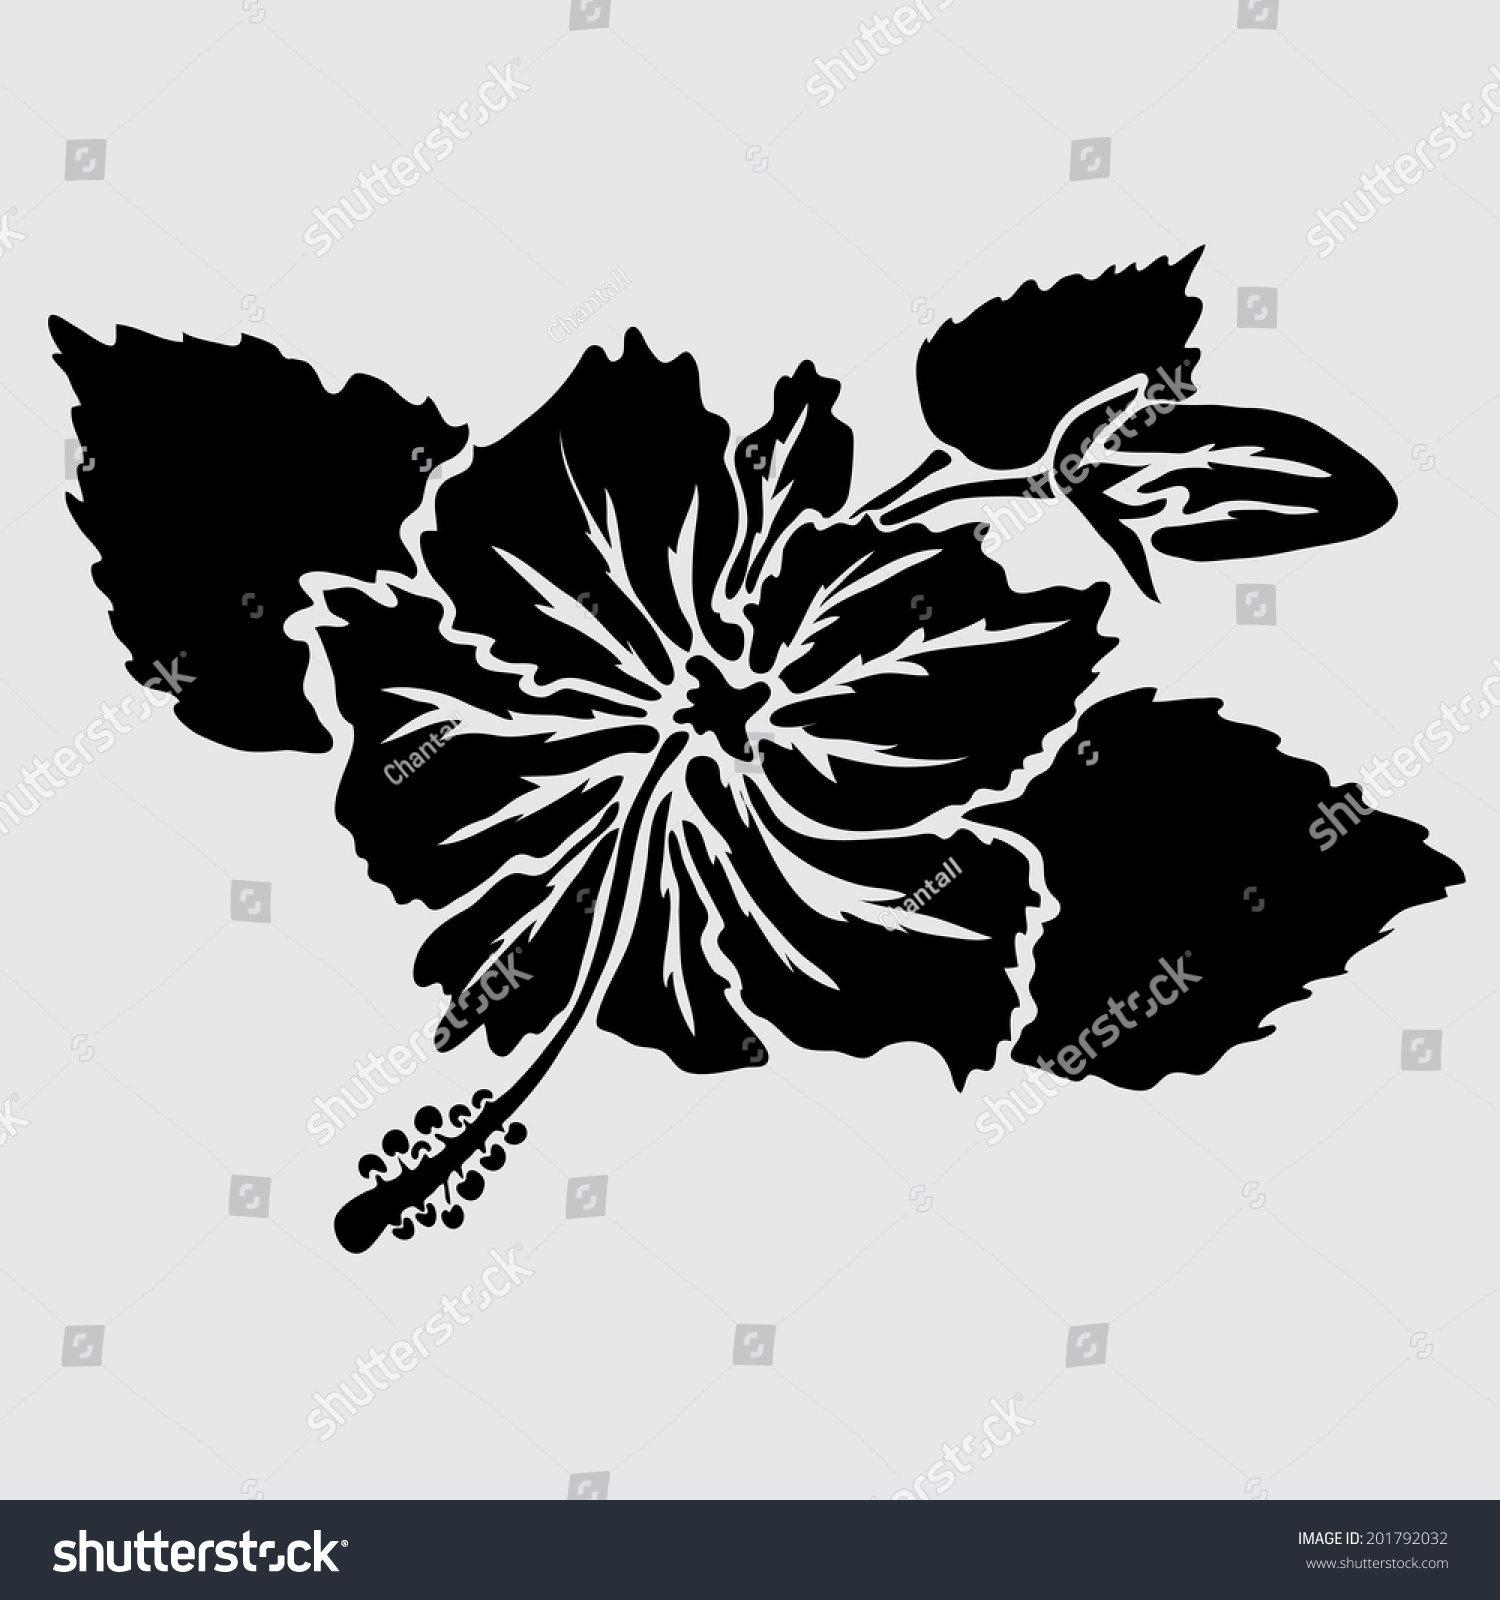 Elegant Decorative Hibiscus Flowers Design Element Stock Vector